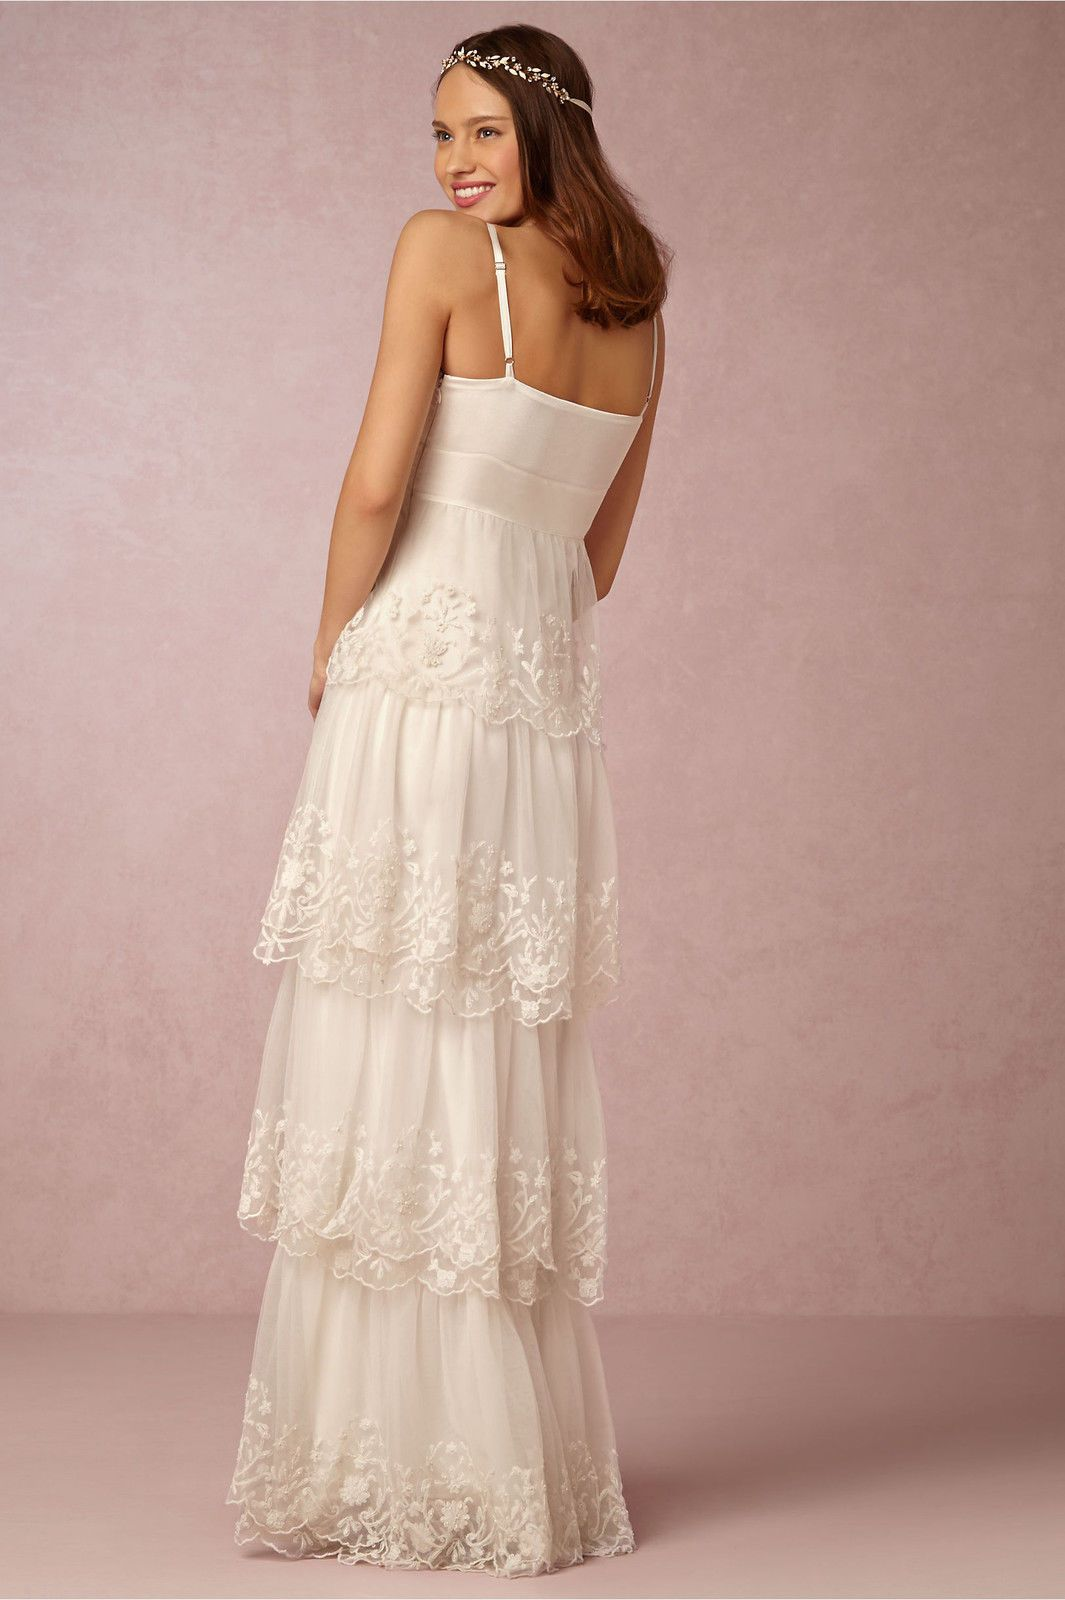 NR Wedding Dress CANDELA Tiered Beaded Scalloped Lace Bridal Gown ...